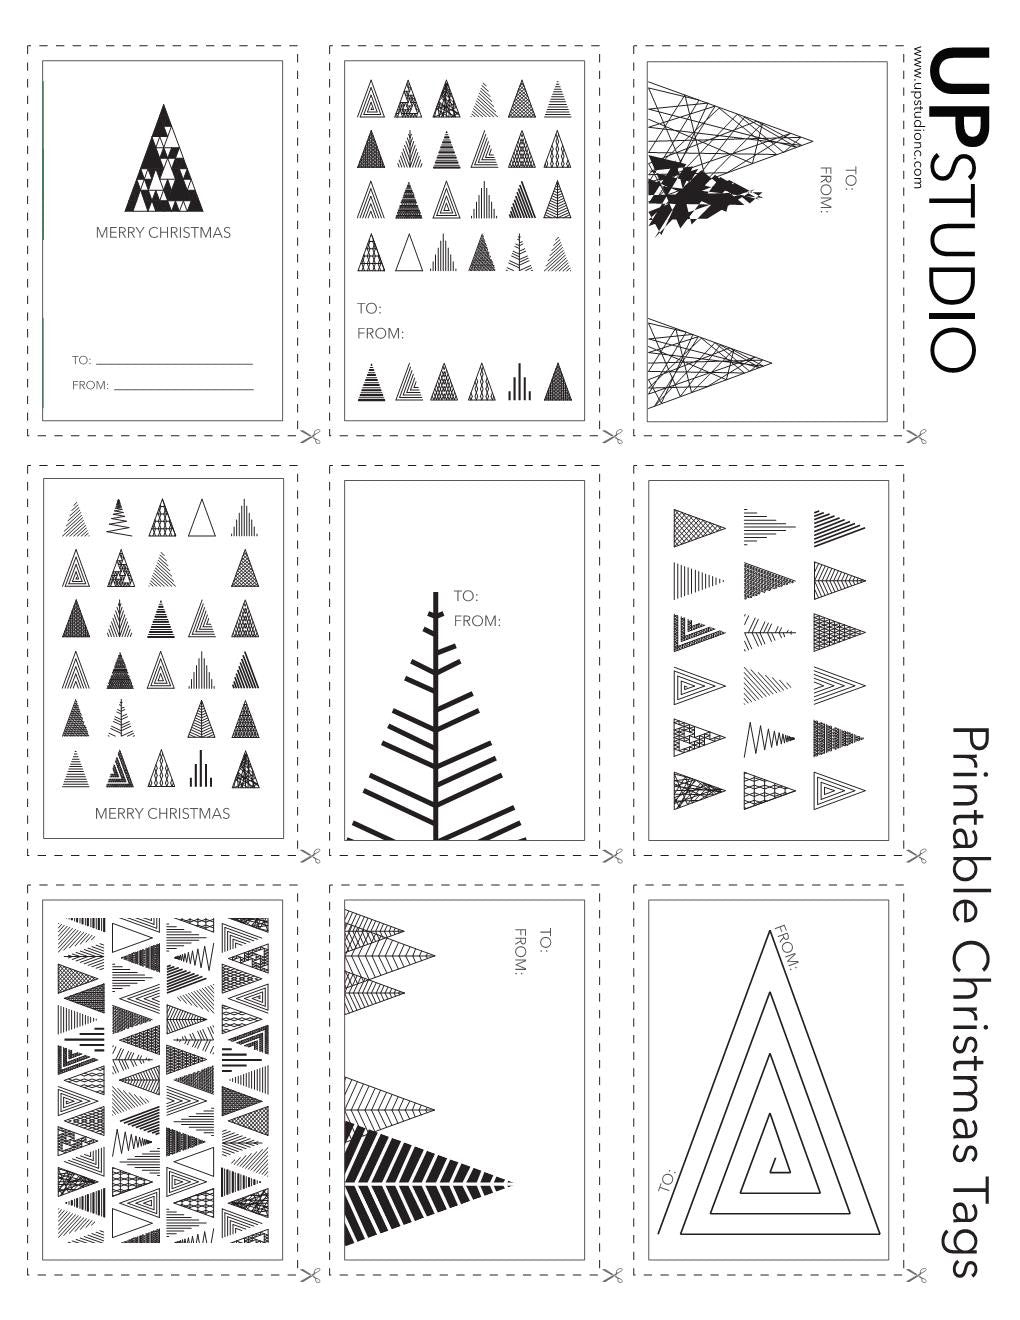 image regarding Printable Christmas Tags Black and White referred to as UPstudio - Printable Xmas Tags Cost-free Obtain